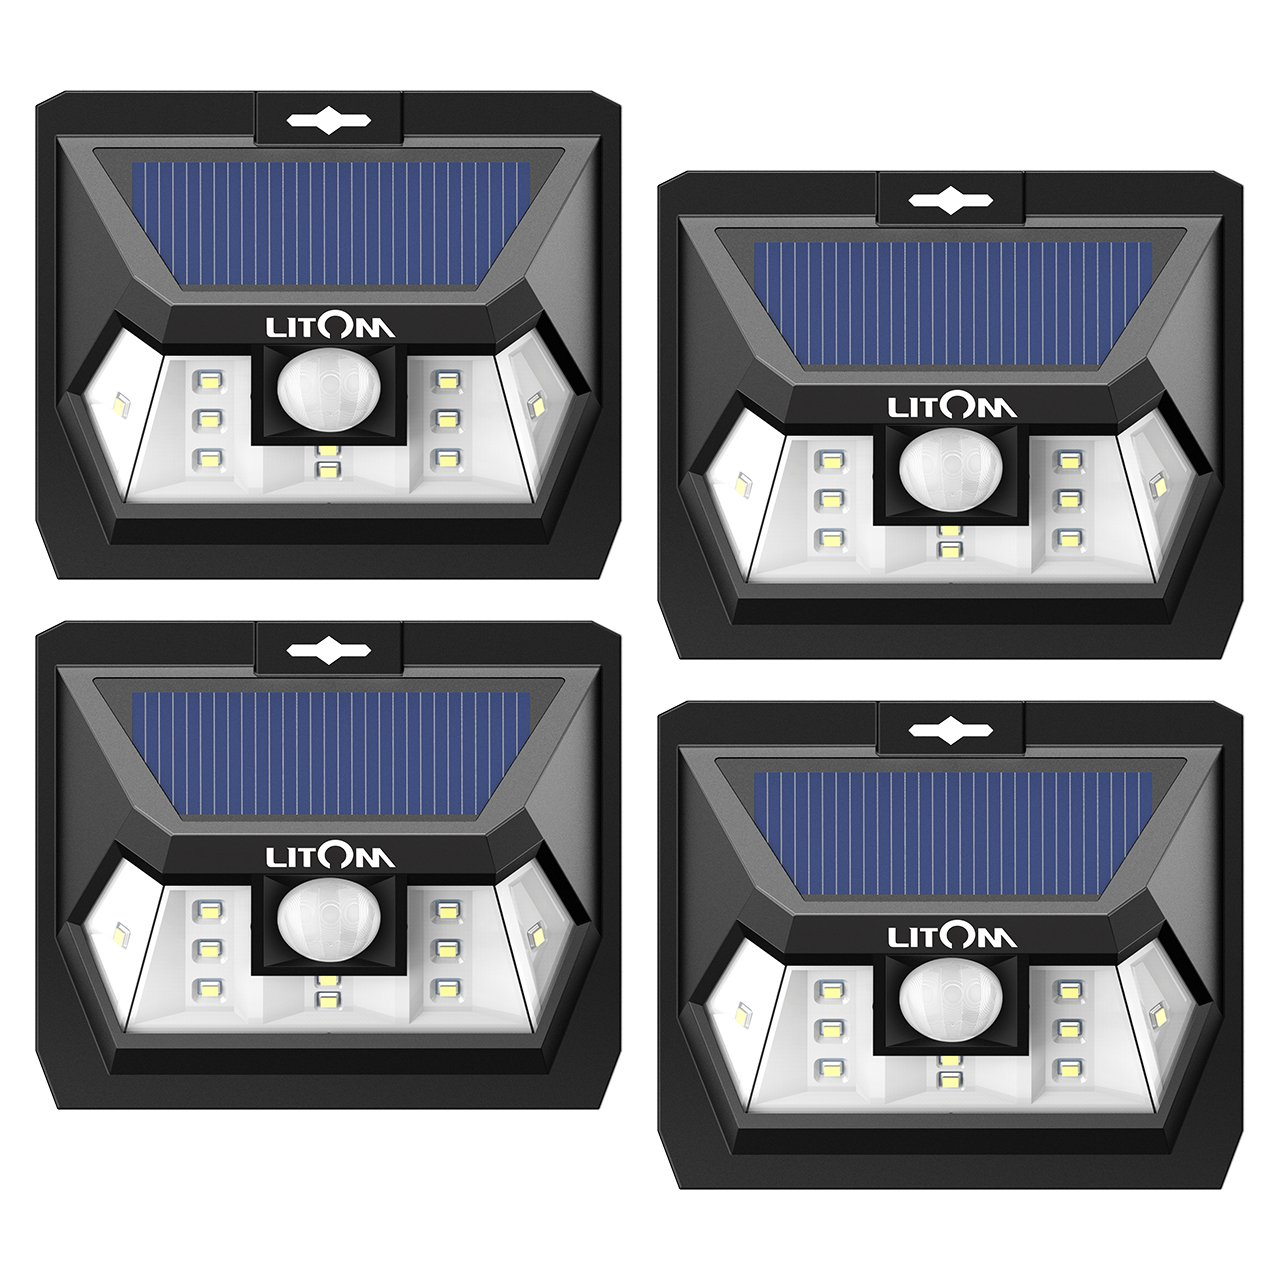 LITOM Solar Lights Outdoor, Wireless LED Solar Motion Sensor Lights with Wide Angle, IP65 Waterproof Security Lights for Front Door Yard Garage Deck Porch Shed Walkway Fence (4 Pack) by Litom (Image #1)